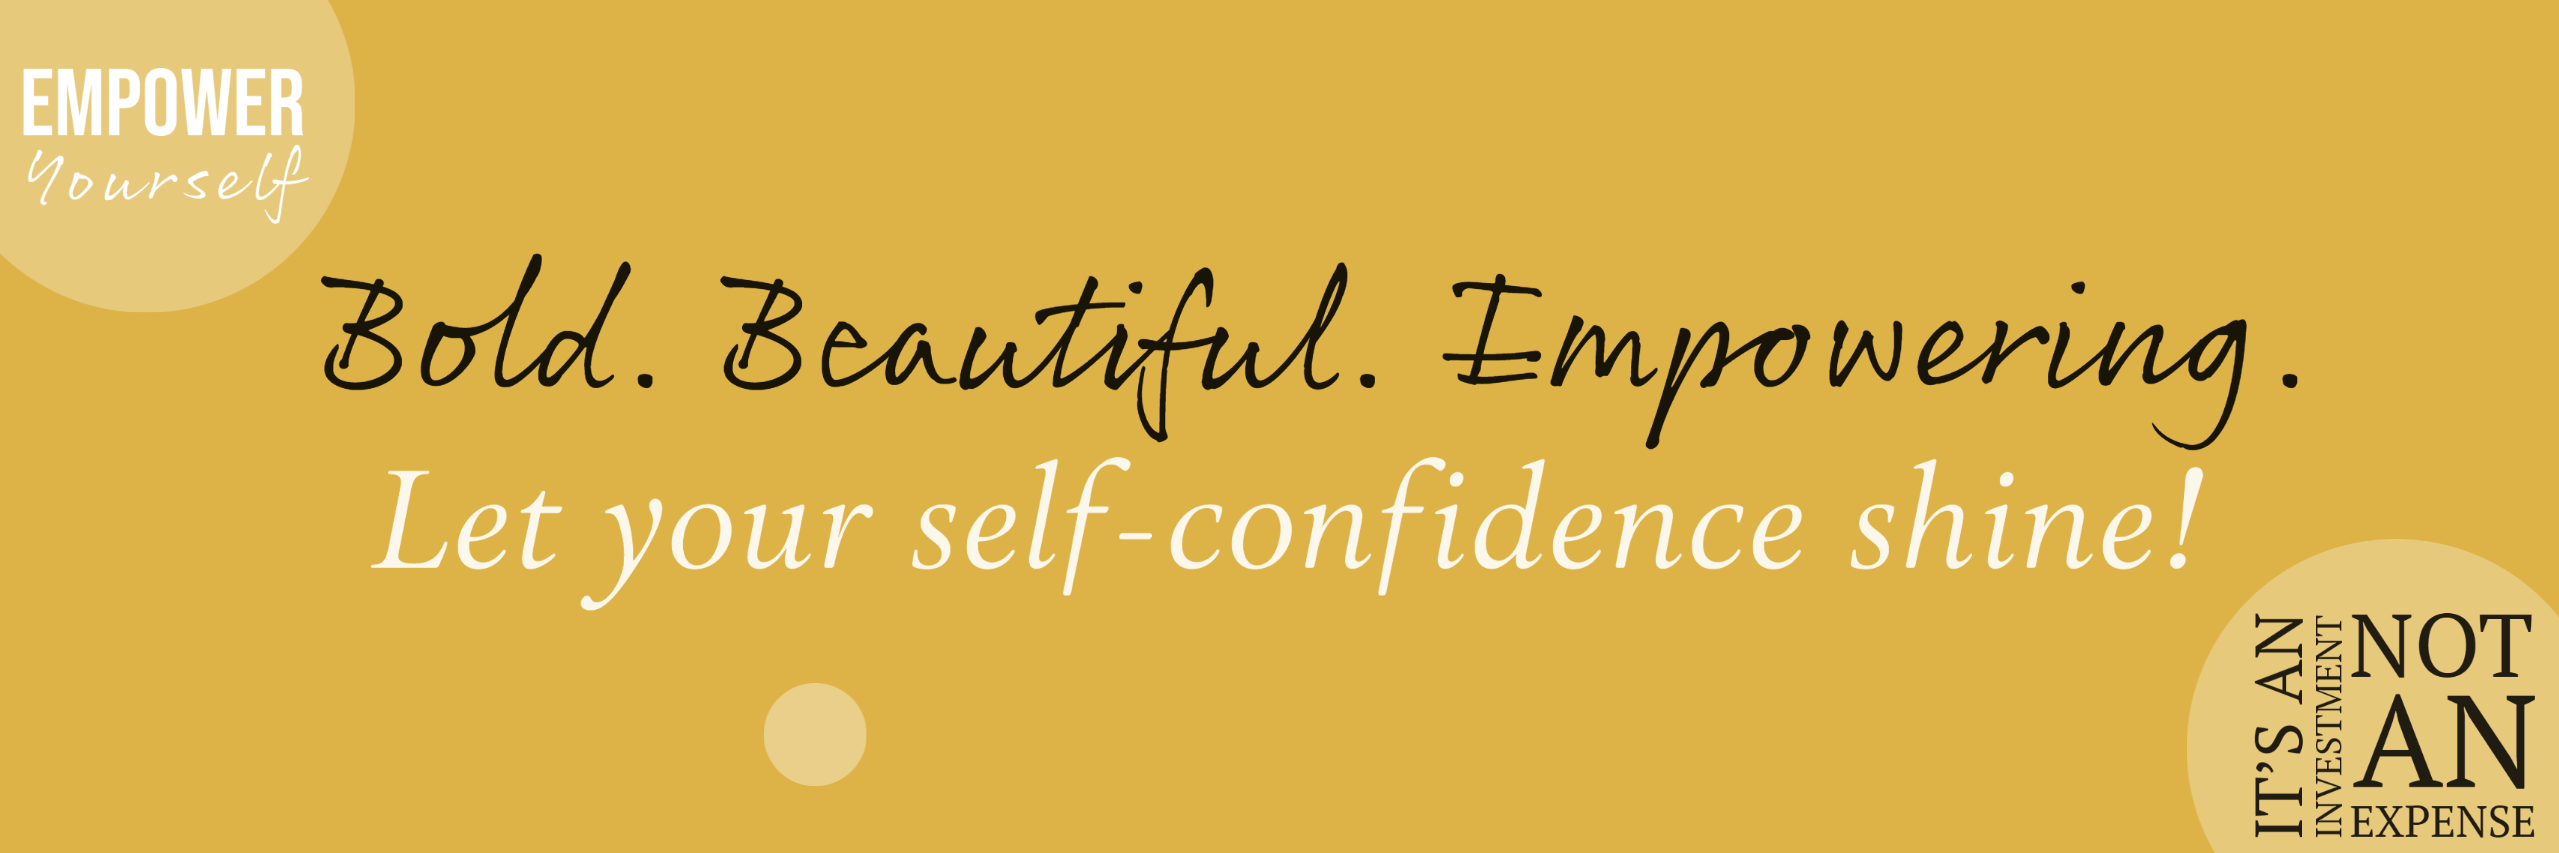 let your self-confidence shine